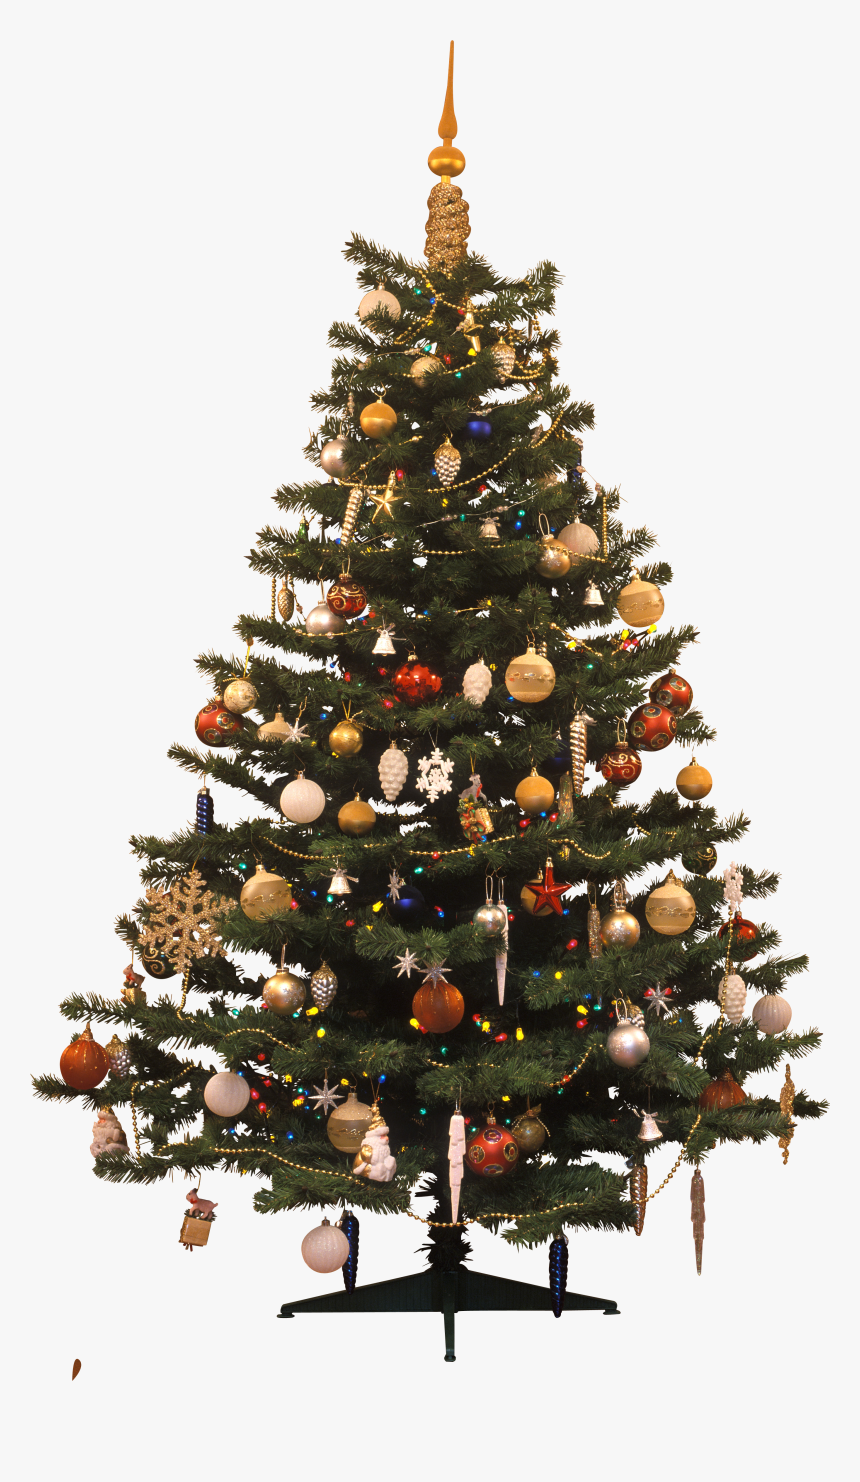 Christmas Tree Png Transparent Png Kindpng Please use search to find more variants of pictures and to choose between available options. christmas tree png transparent png